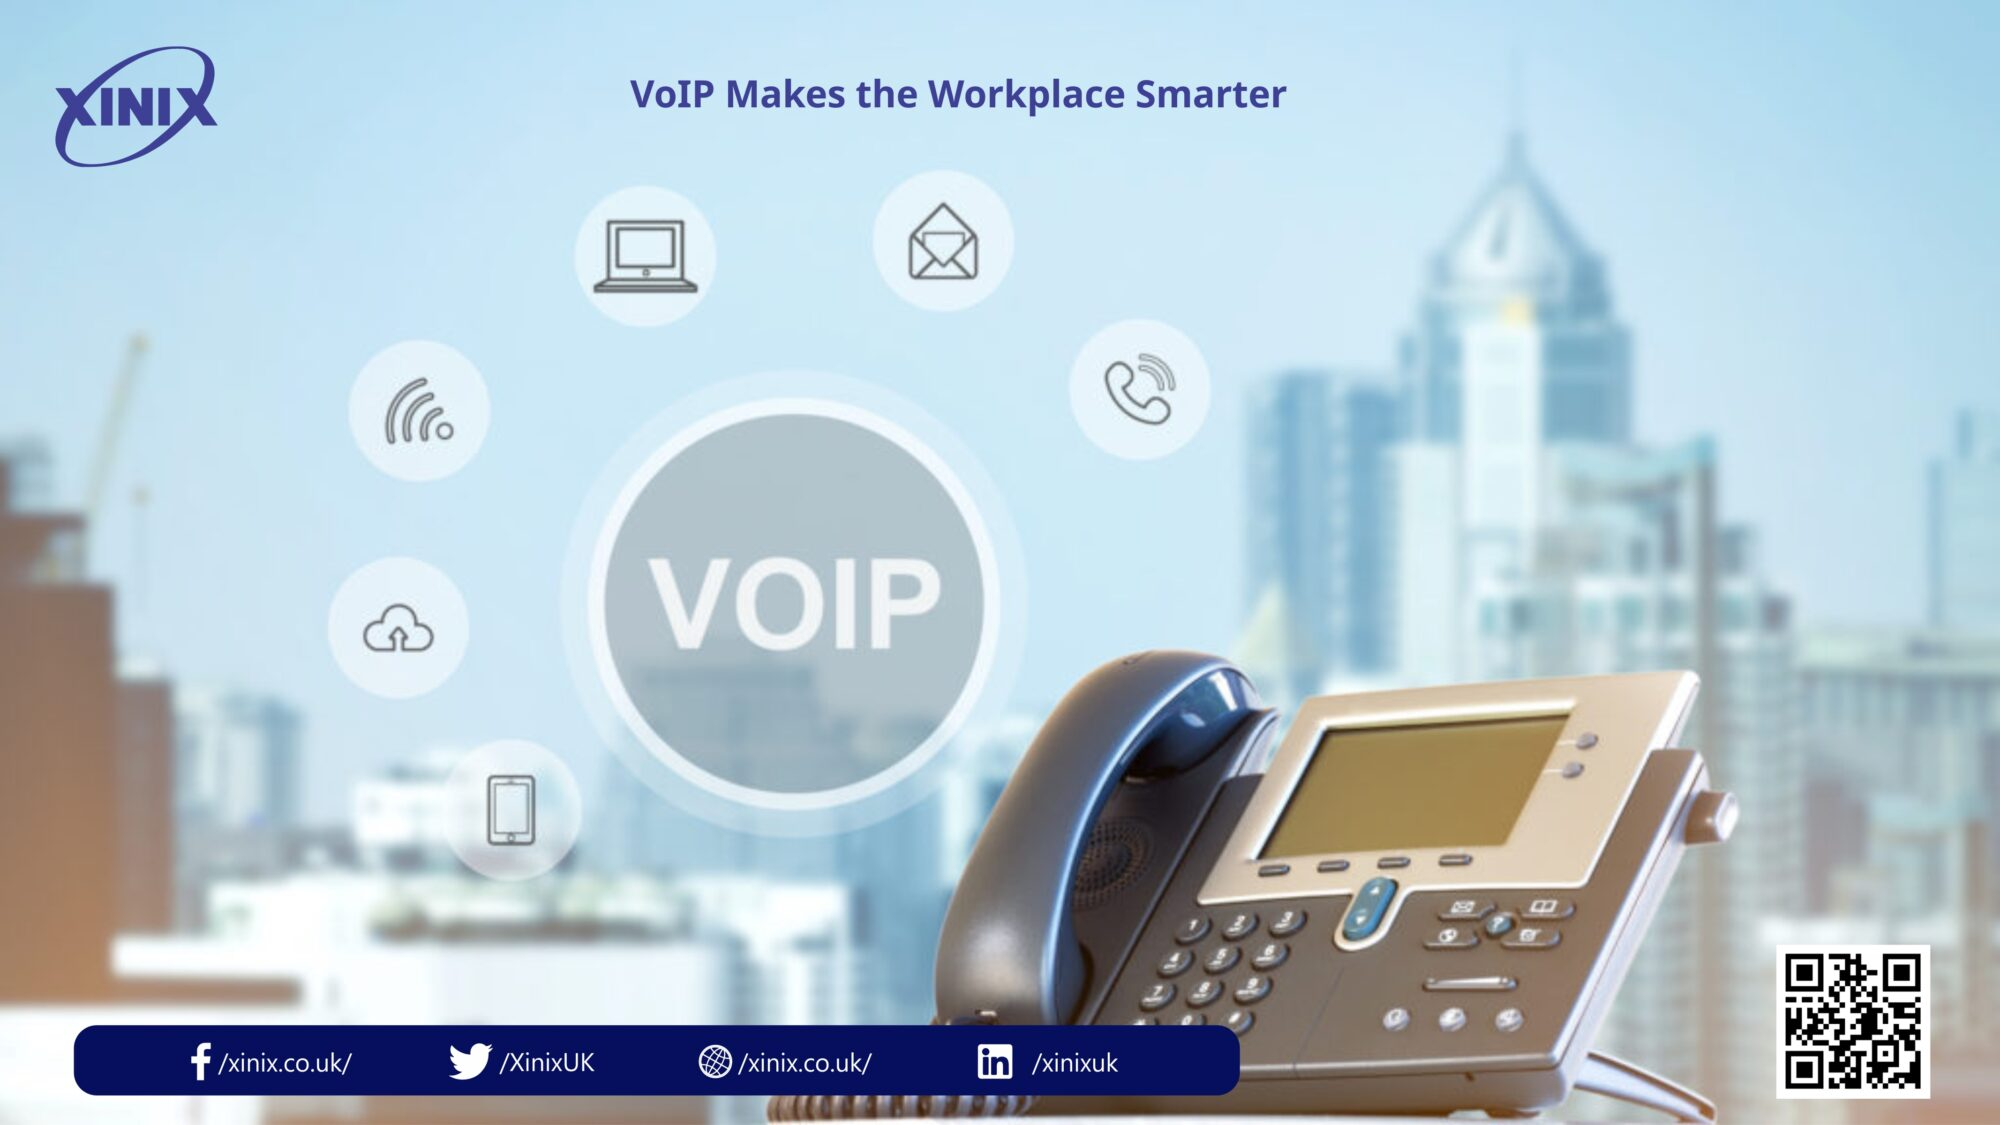 VoIP Makes the Workplace Smarter